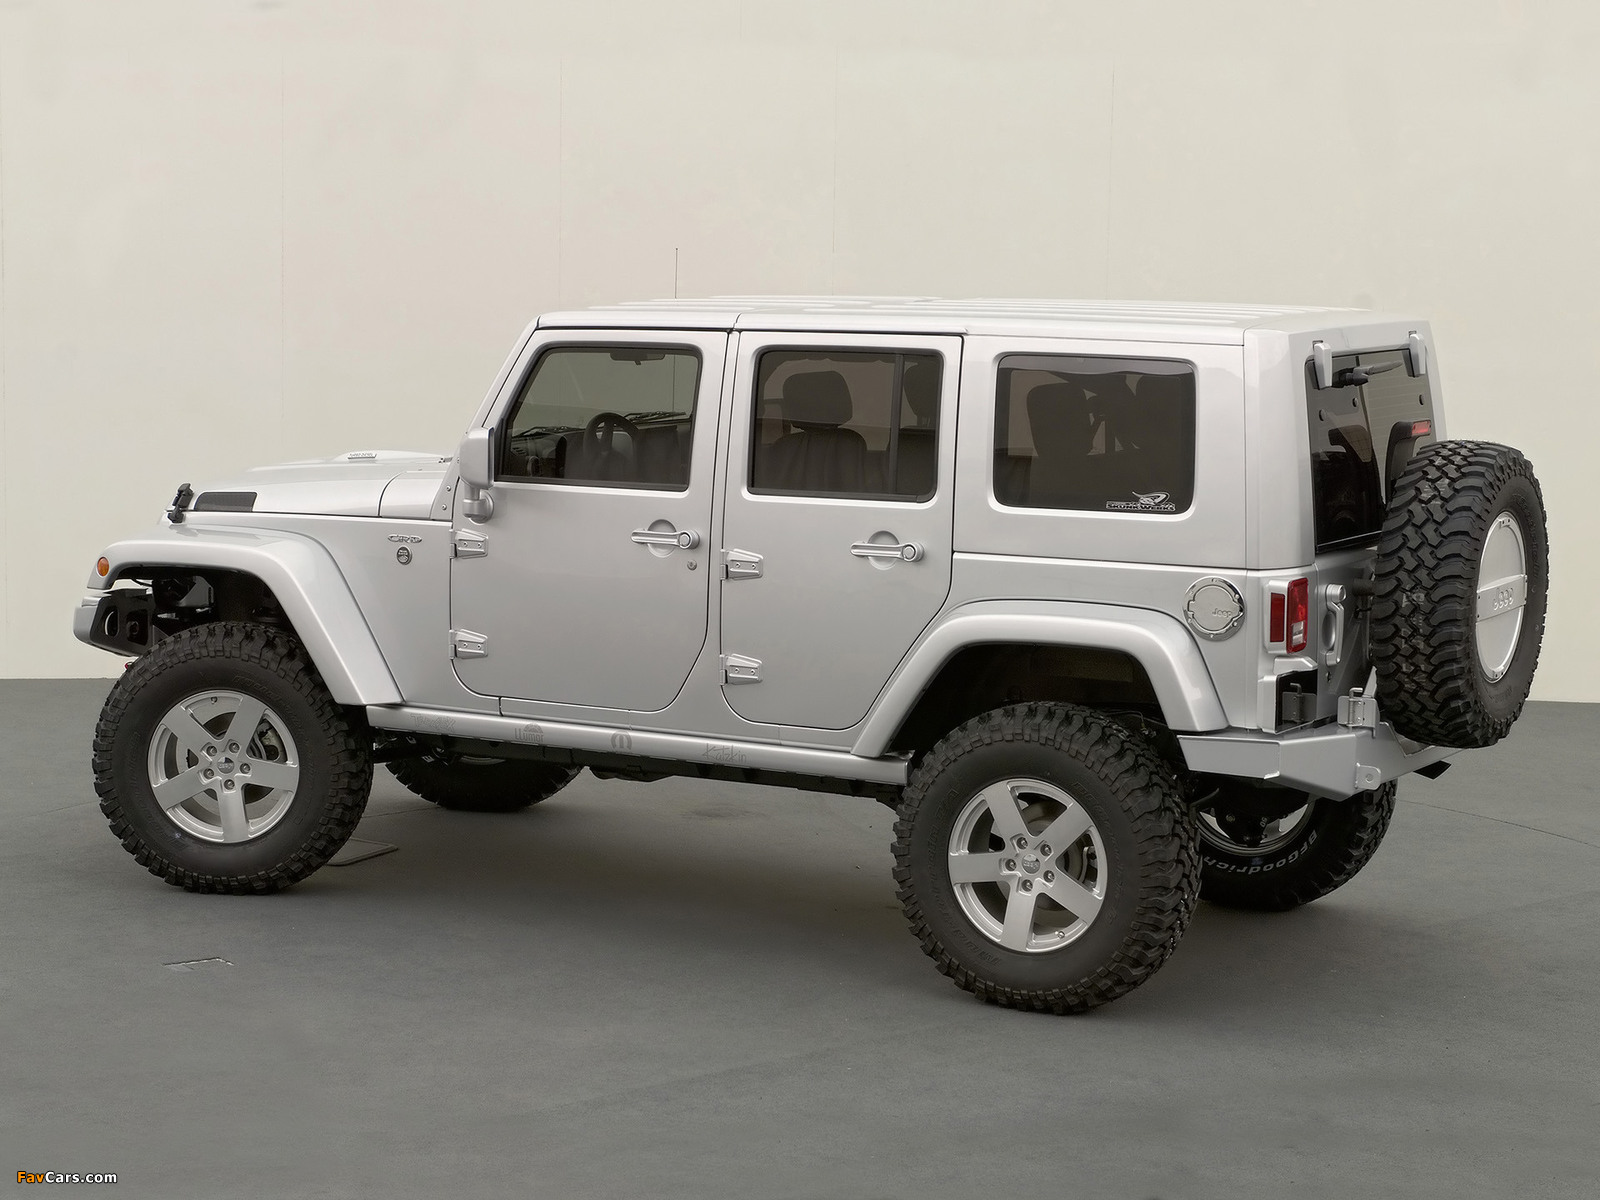 Jeep Wrangler Unlimited Rubicon Concept (JK) 2006 wallpapers (1600 x 1200)